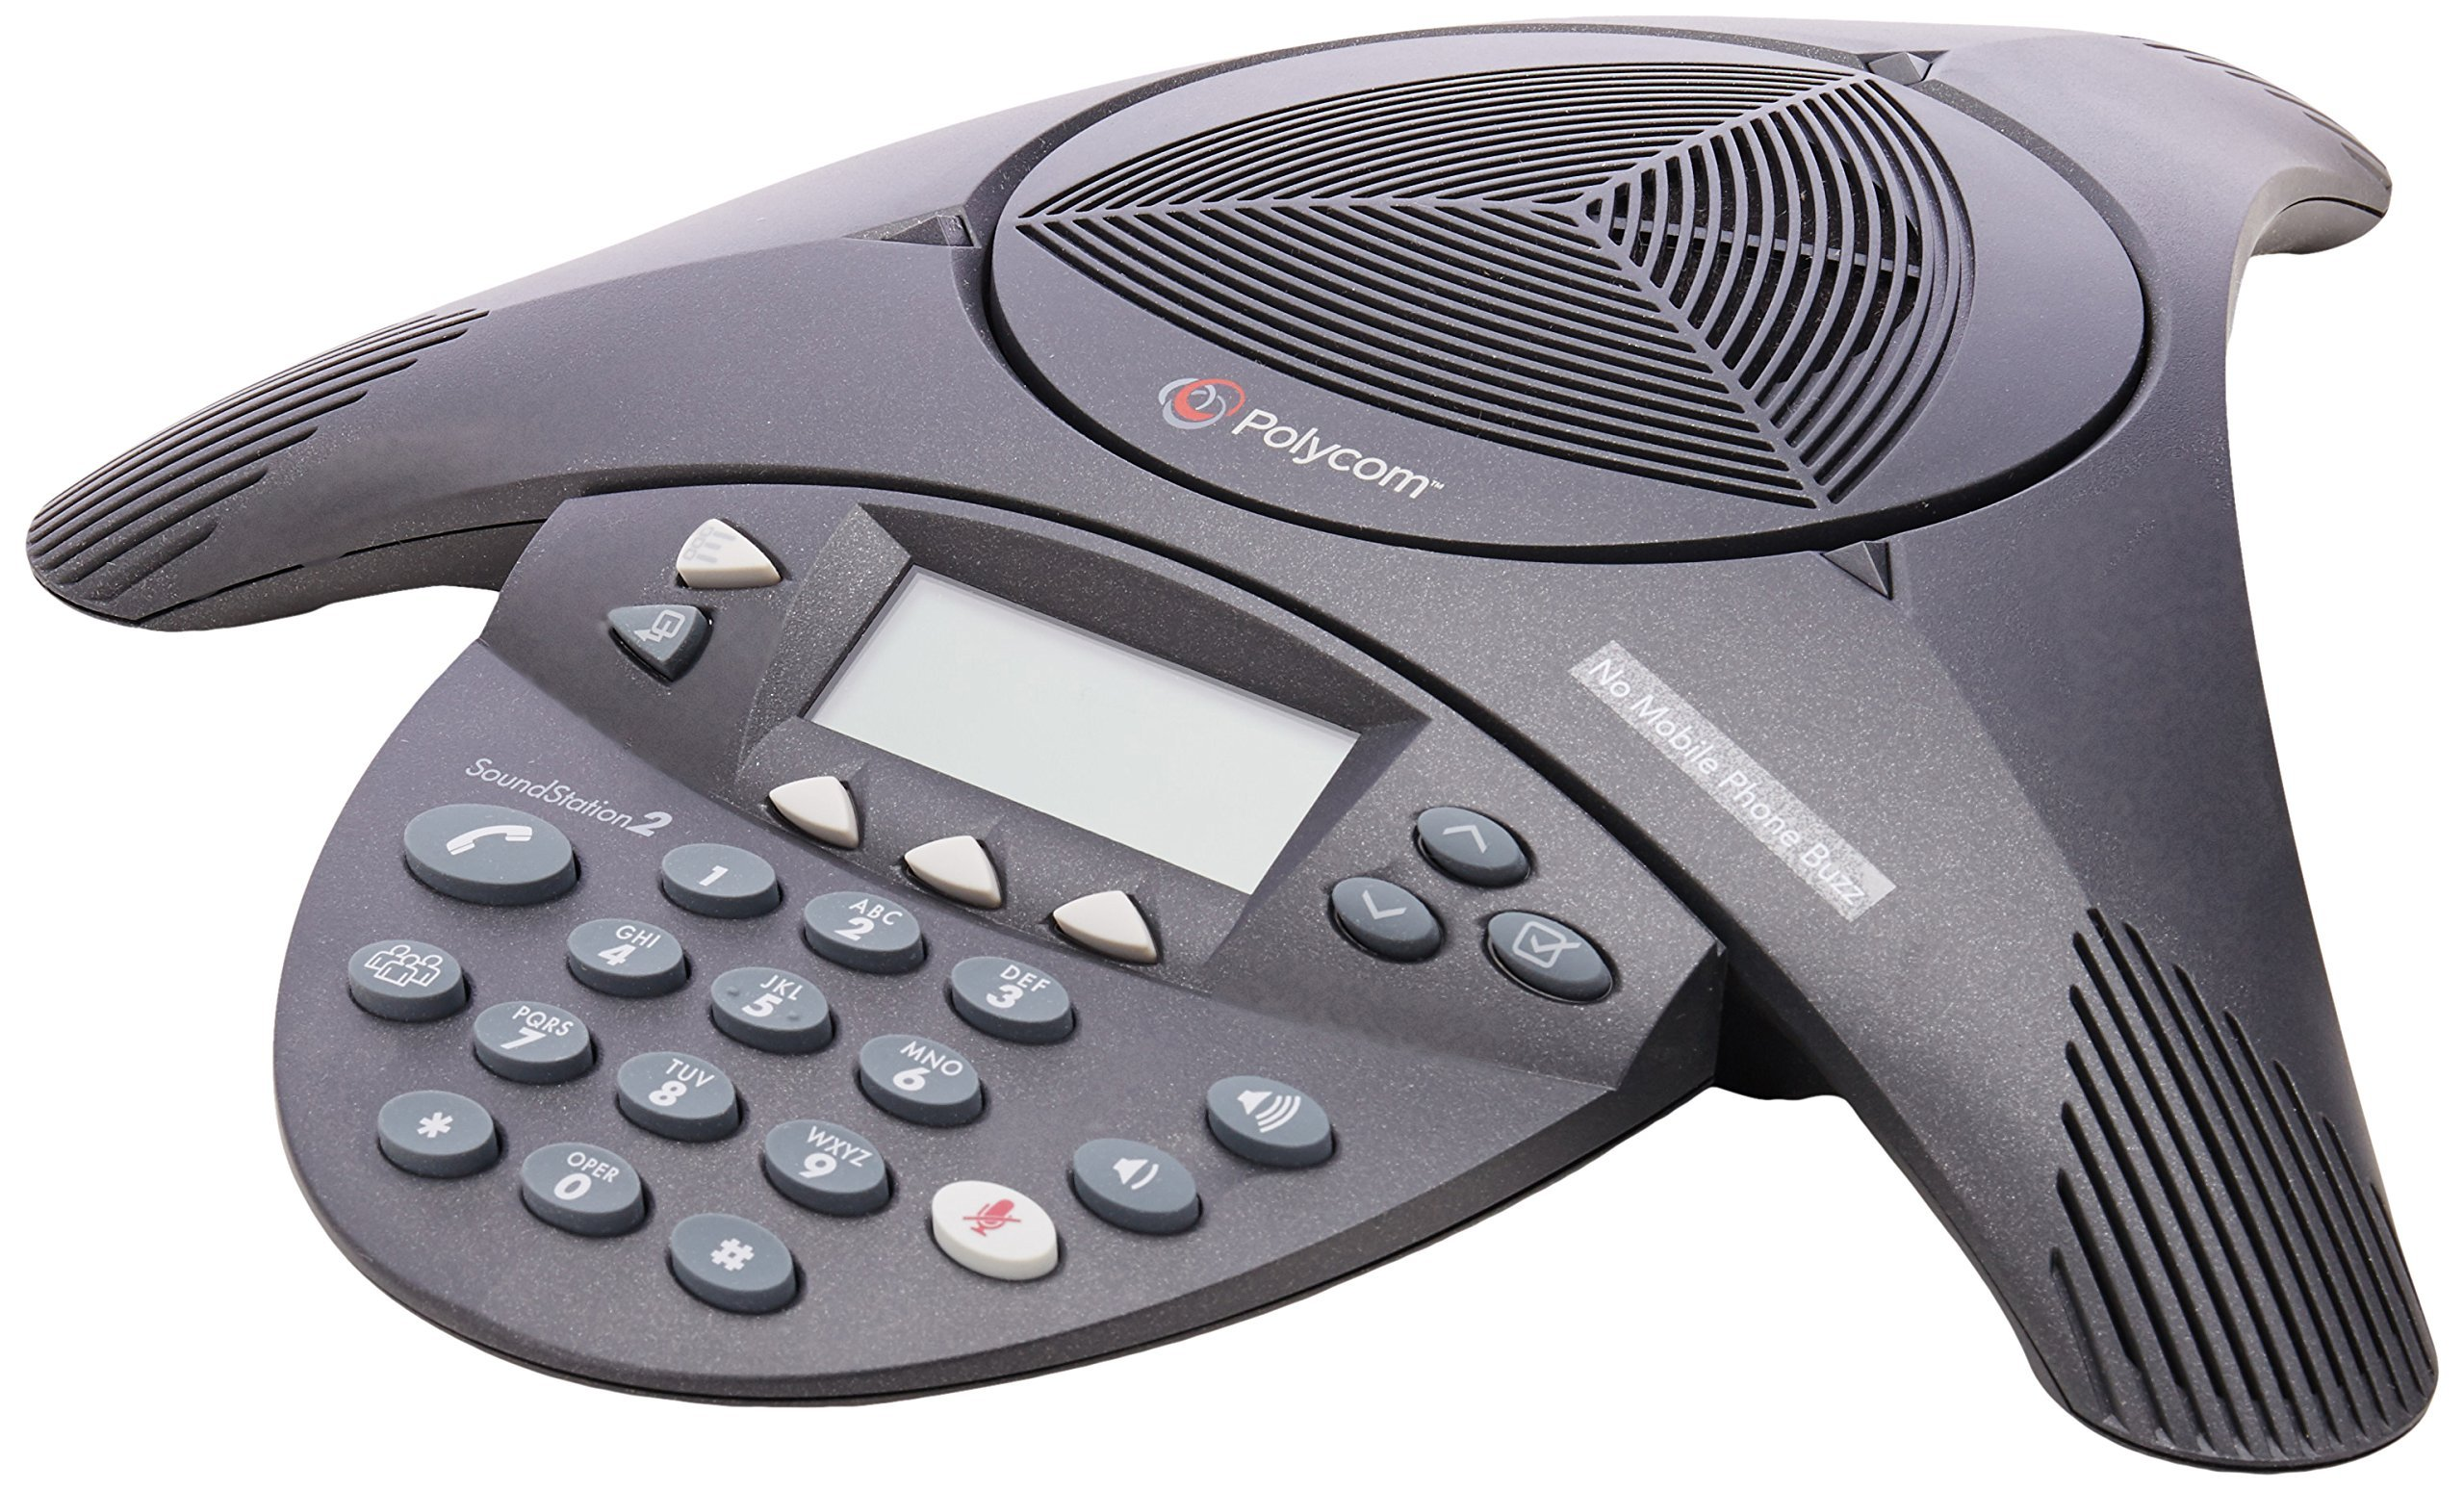 Polycom SoundStation 2 Non Expandable Analog Conference Phone (2200-16000-001) (Certified Refurbished)